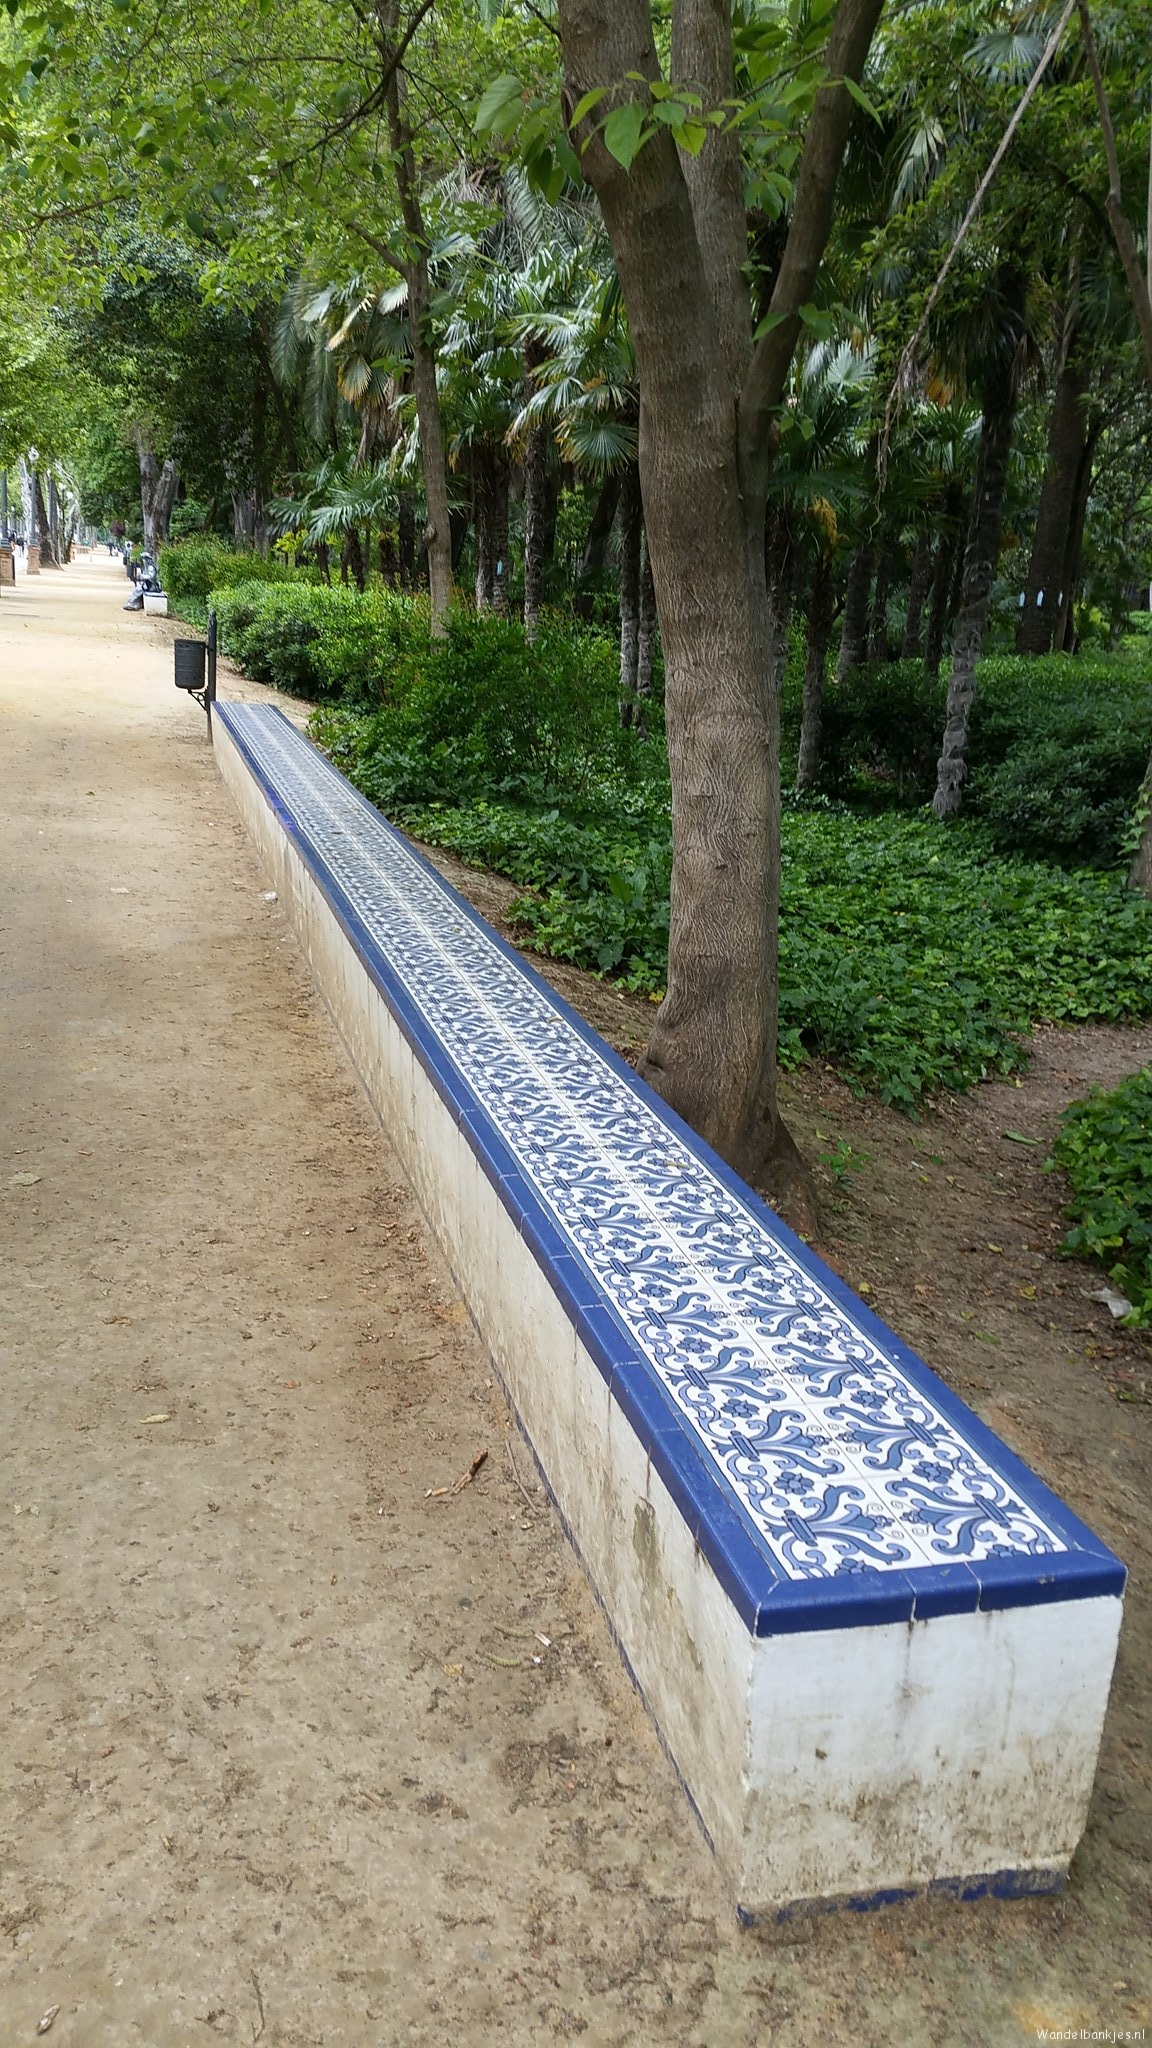 rt -oneone-one-walking-benches-sevilla-https-t-co-jybvo2mtii